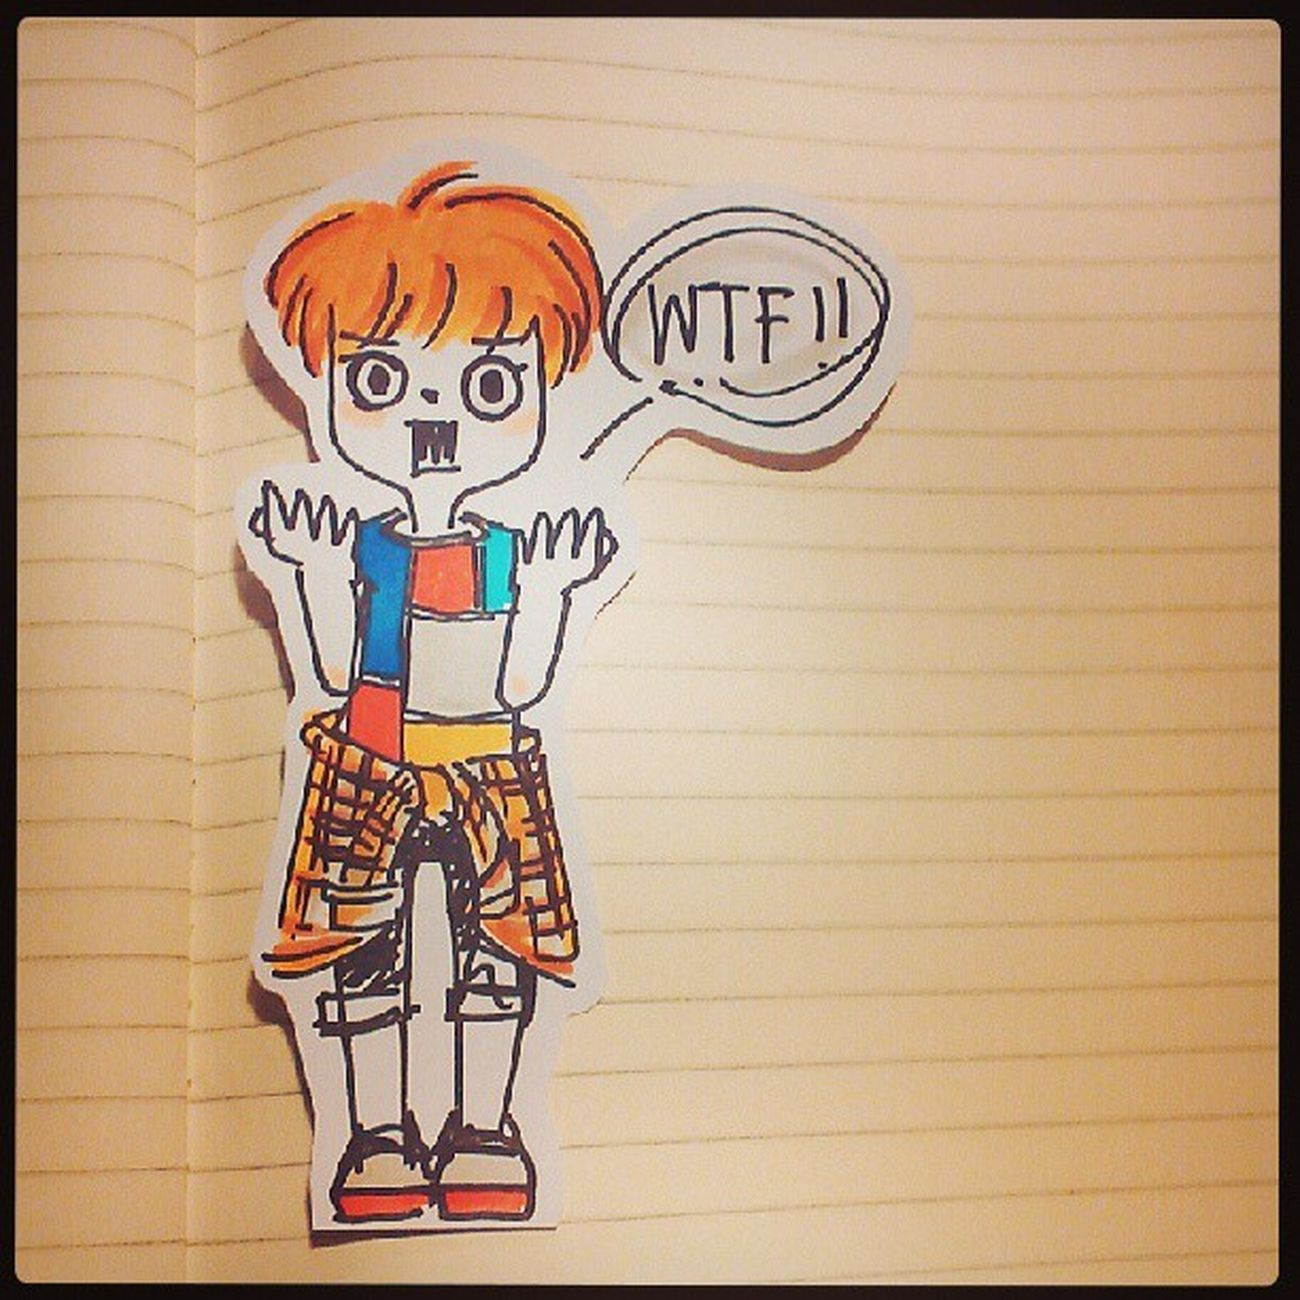 WTF! วาดไว้นานแล้วหละ ; P Art, Drawing, Creativity Illustation Illus Hand Made